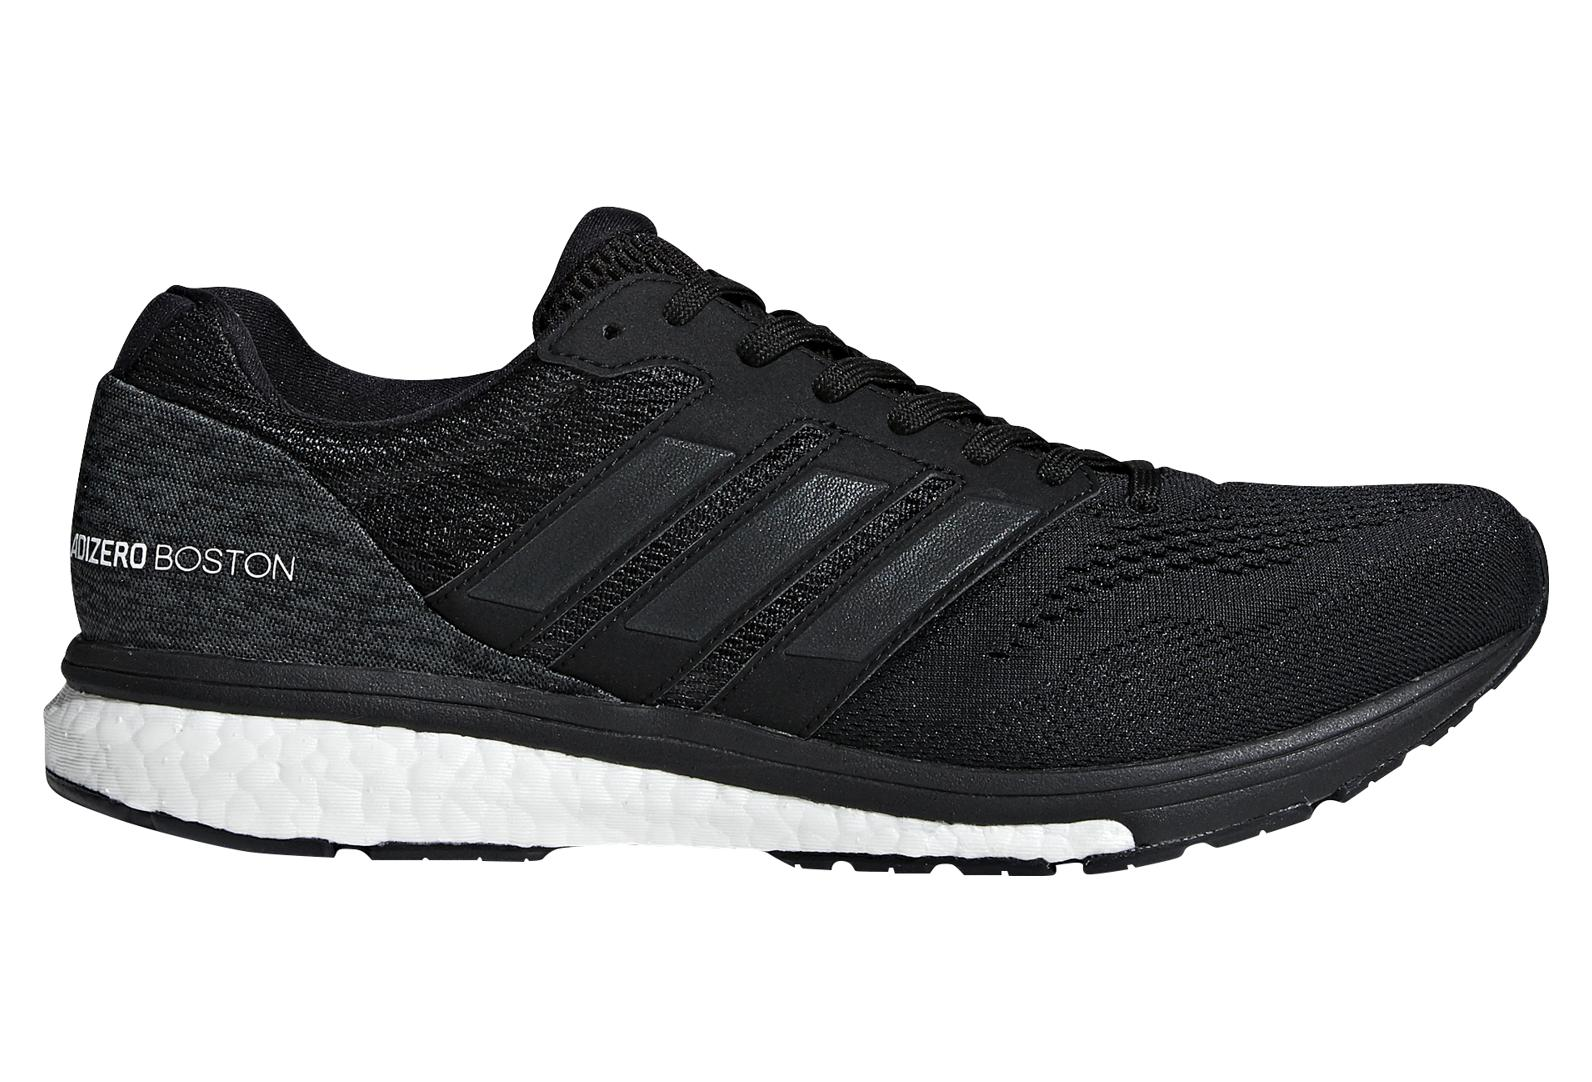 sports shoes 53856 9423e Adidas ADIZERO BOSTON 7 Shoes Black